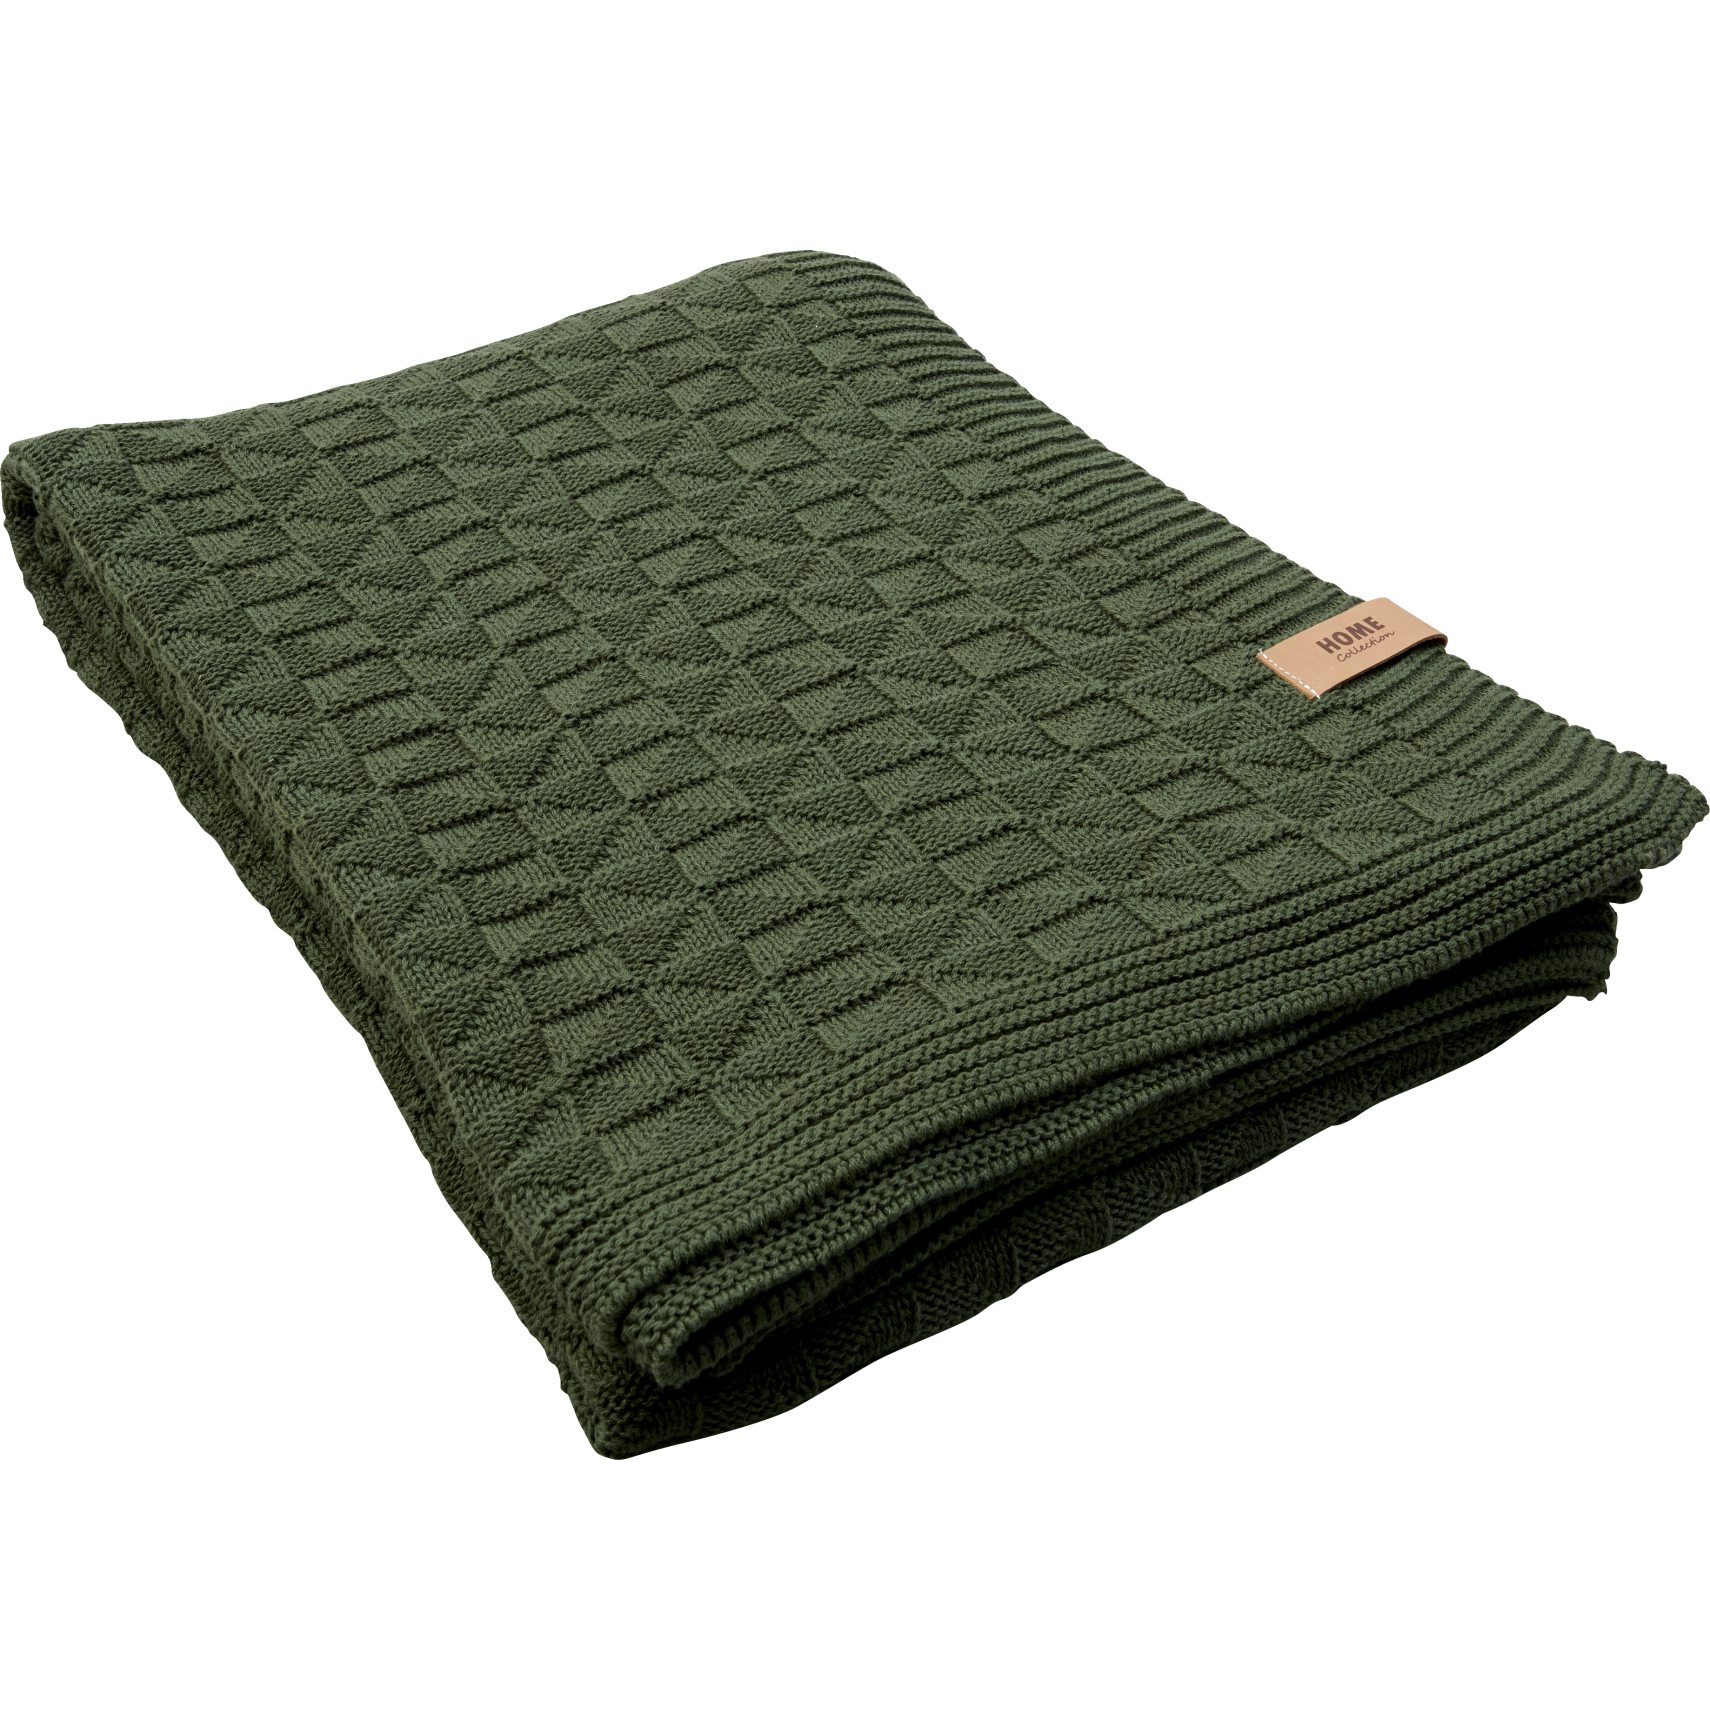 Vallborg Plaid - Kombu green bomuld